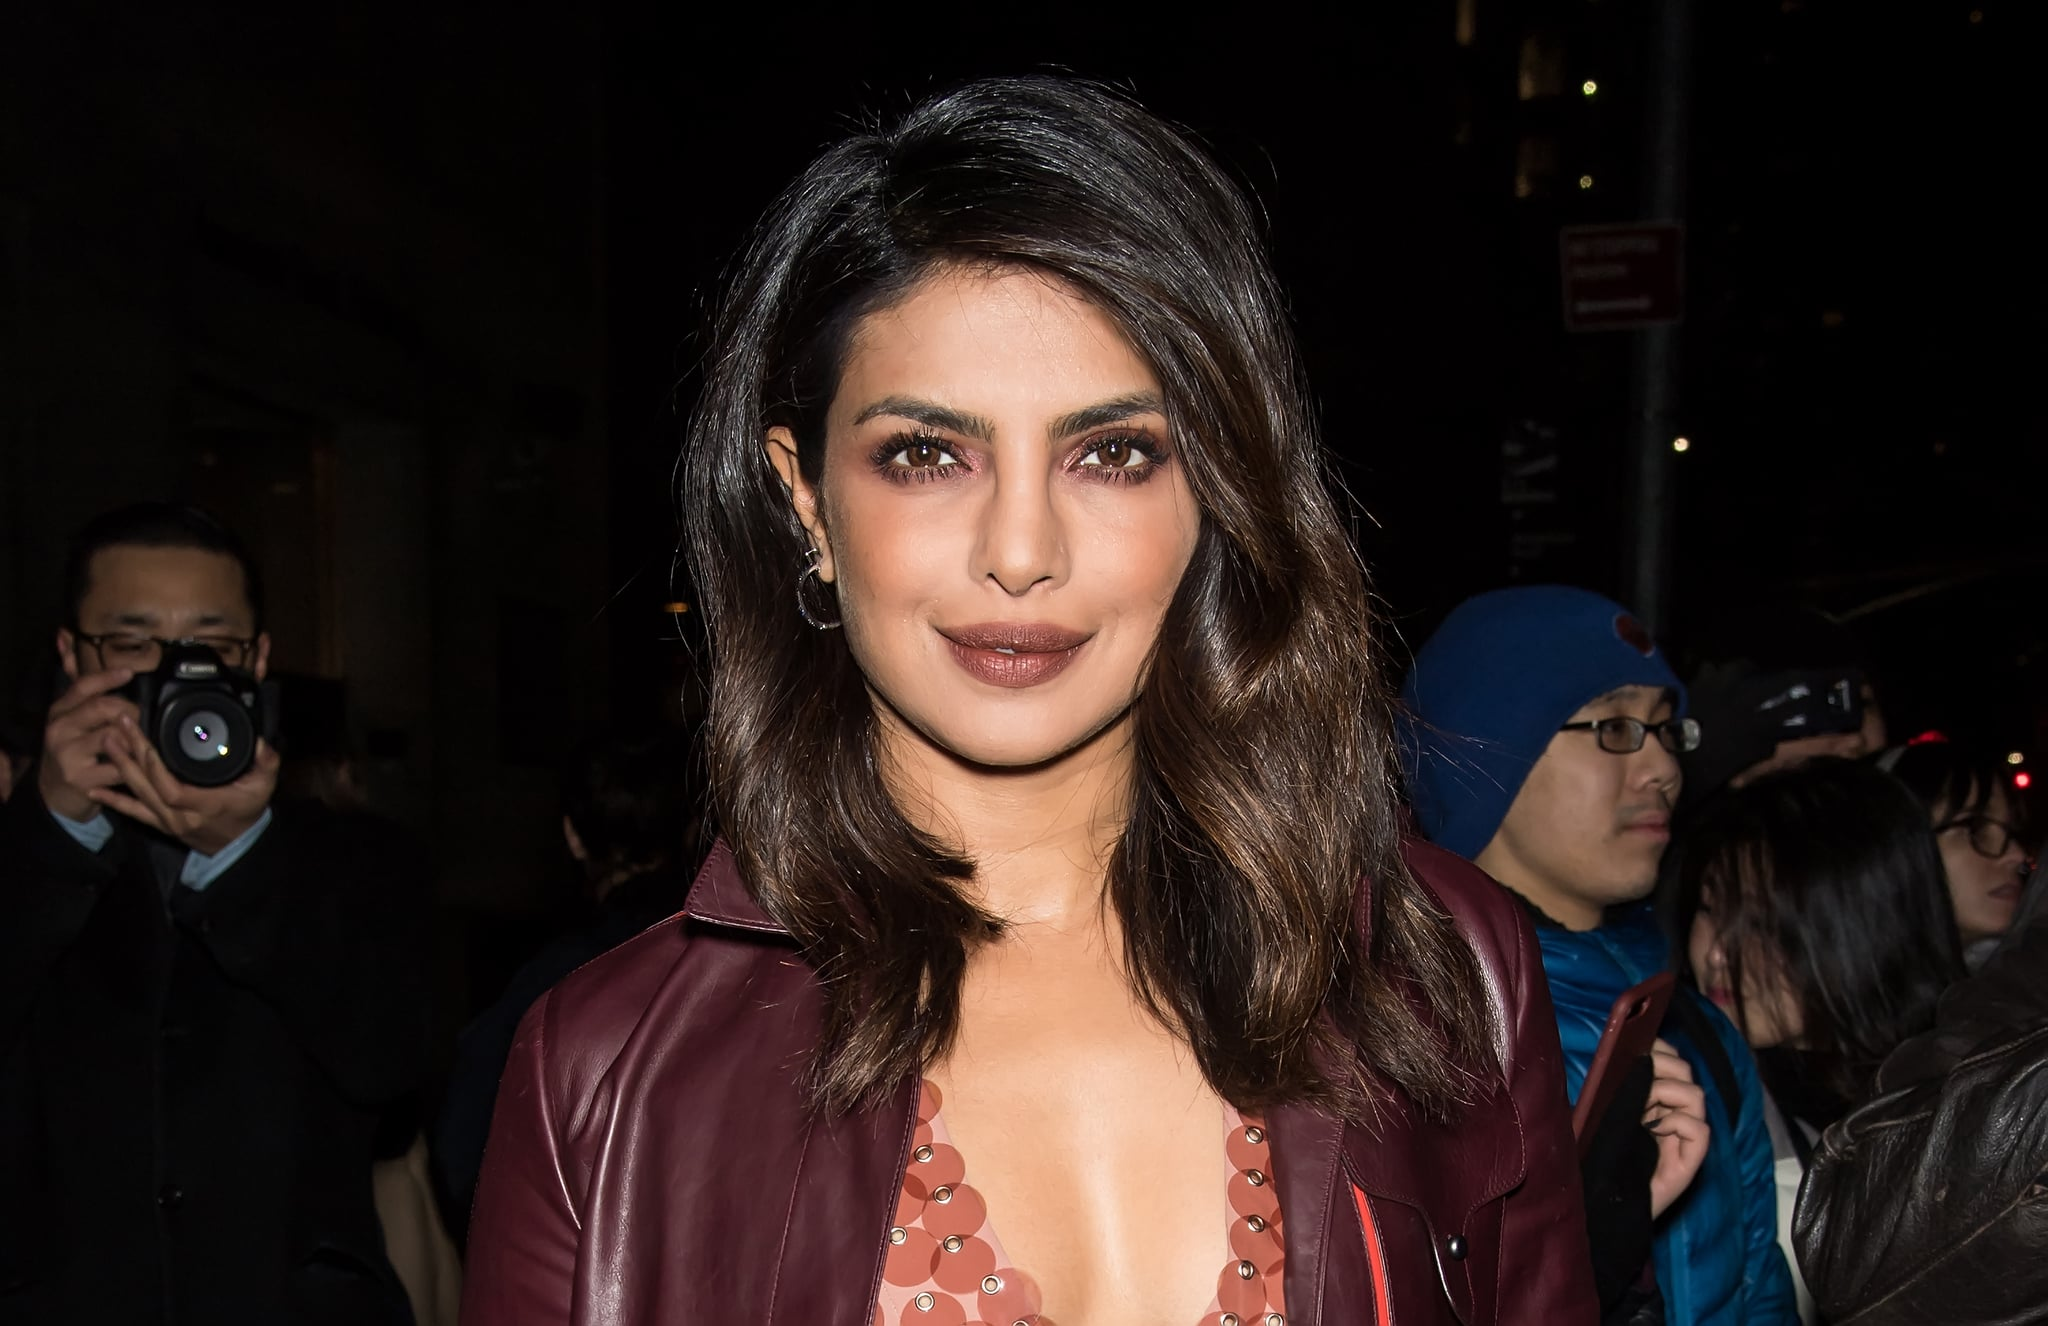 NEW YORK, NY - FEBRUARY 09:  Actress Priyanka Chopra is seen arriving to the Bottega Veneta fashion show during New York Fashion Week at New York Stock Exchange on February 9, 2018 in New York City.  (Photo by Gilbert Carrasquillo/GC Images)